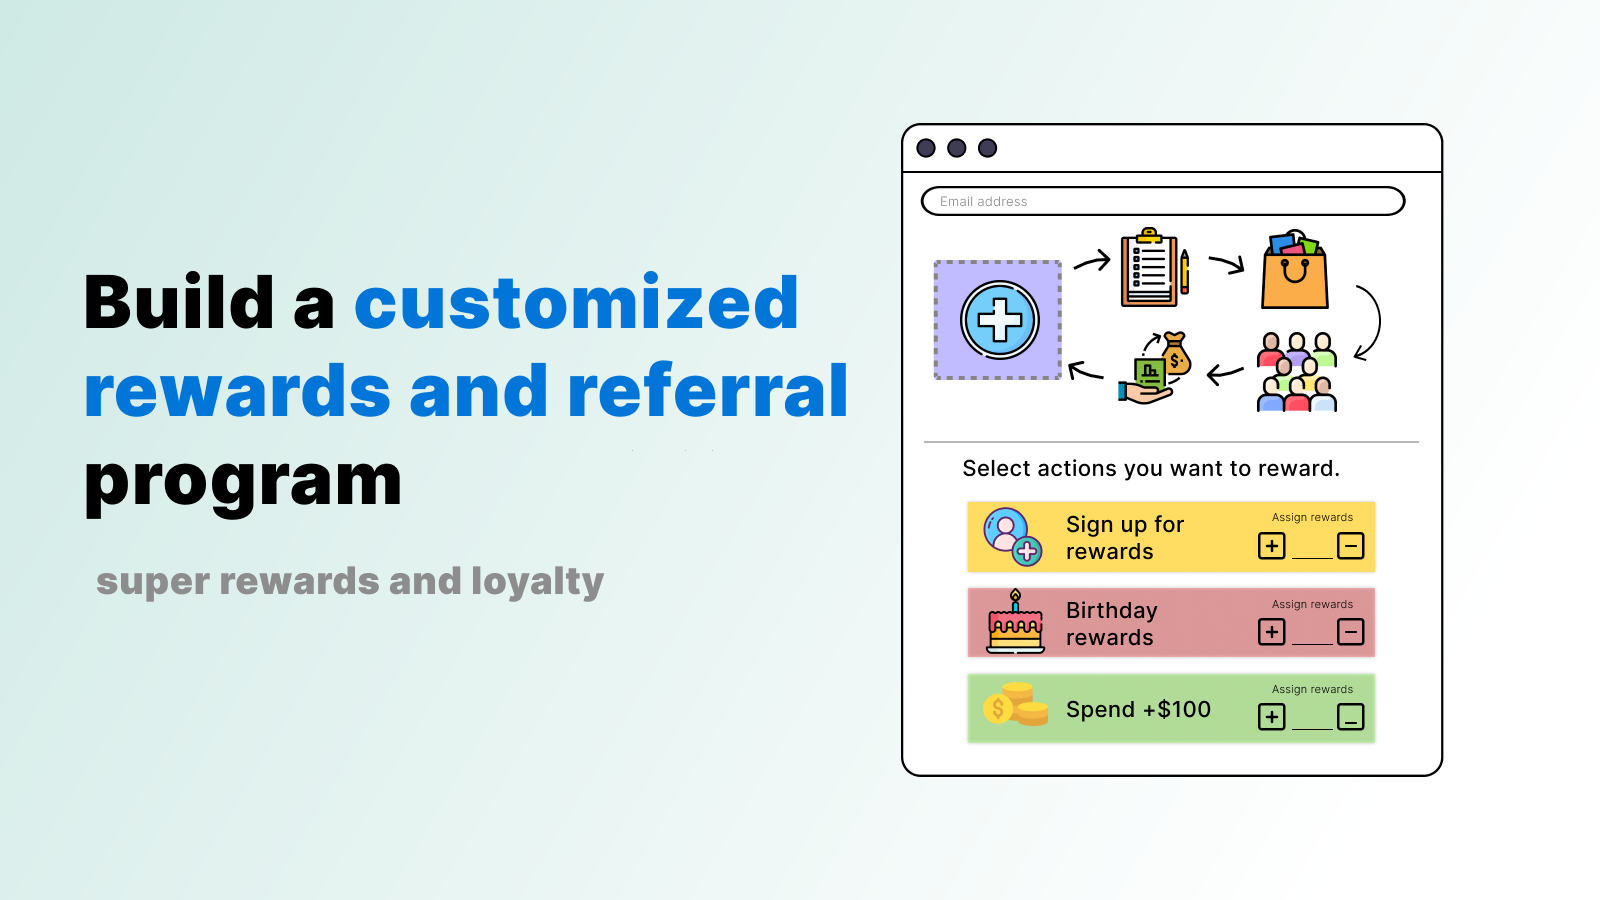 Build a customized rewards and referral program. signup birthday